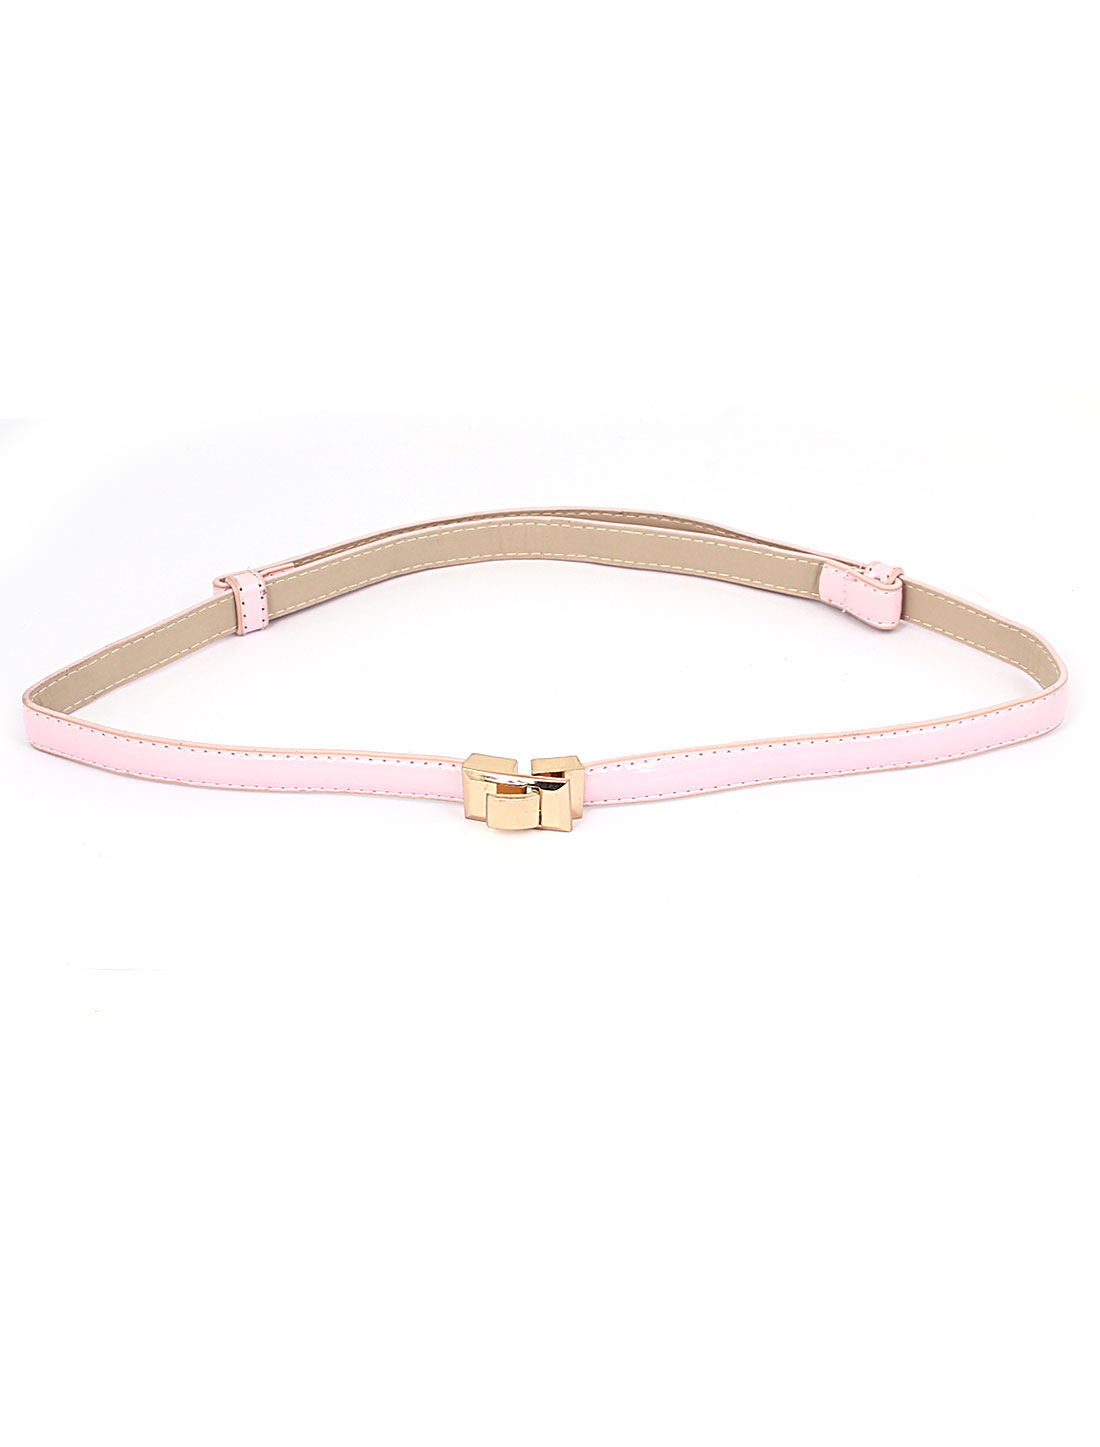 Lady Rectangle Shaped Metal Interlock Buckle Drawstring 1.5cm Width Adjustable Faux Leather Thin Waist Belt Pink